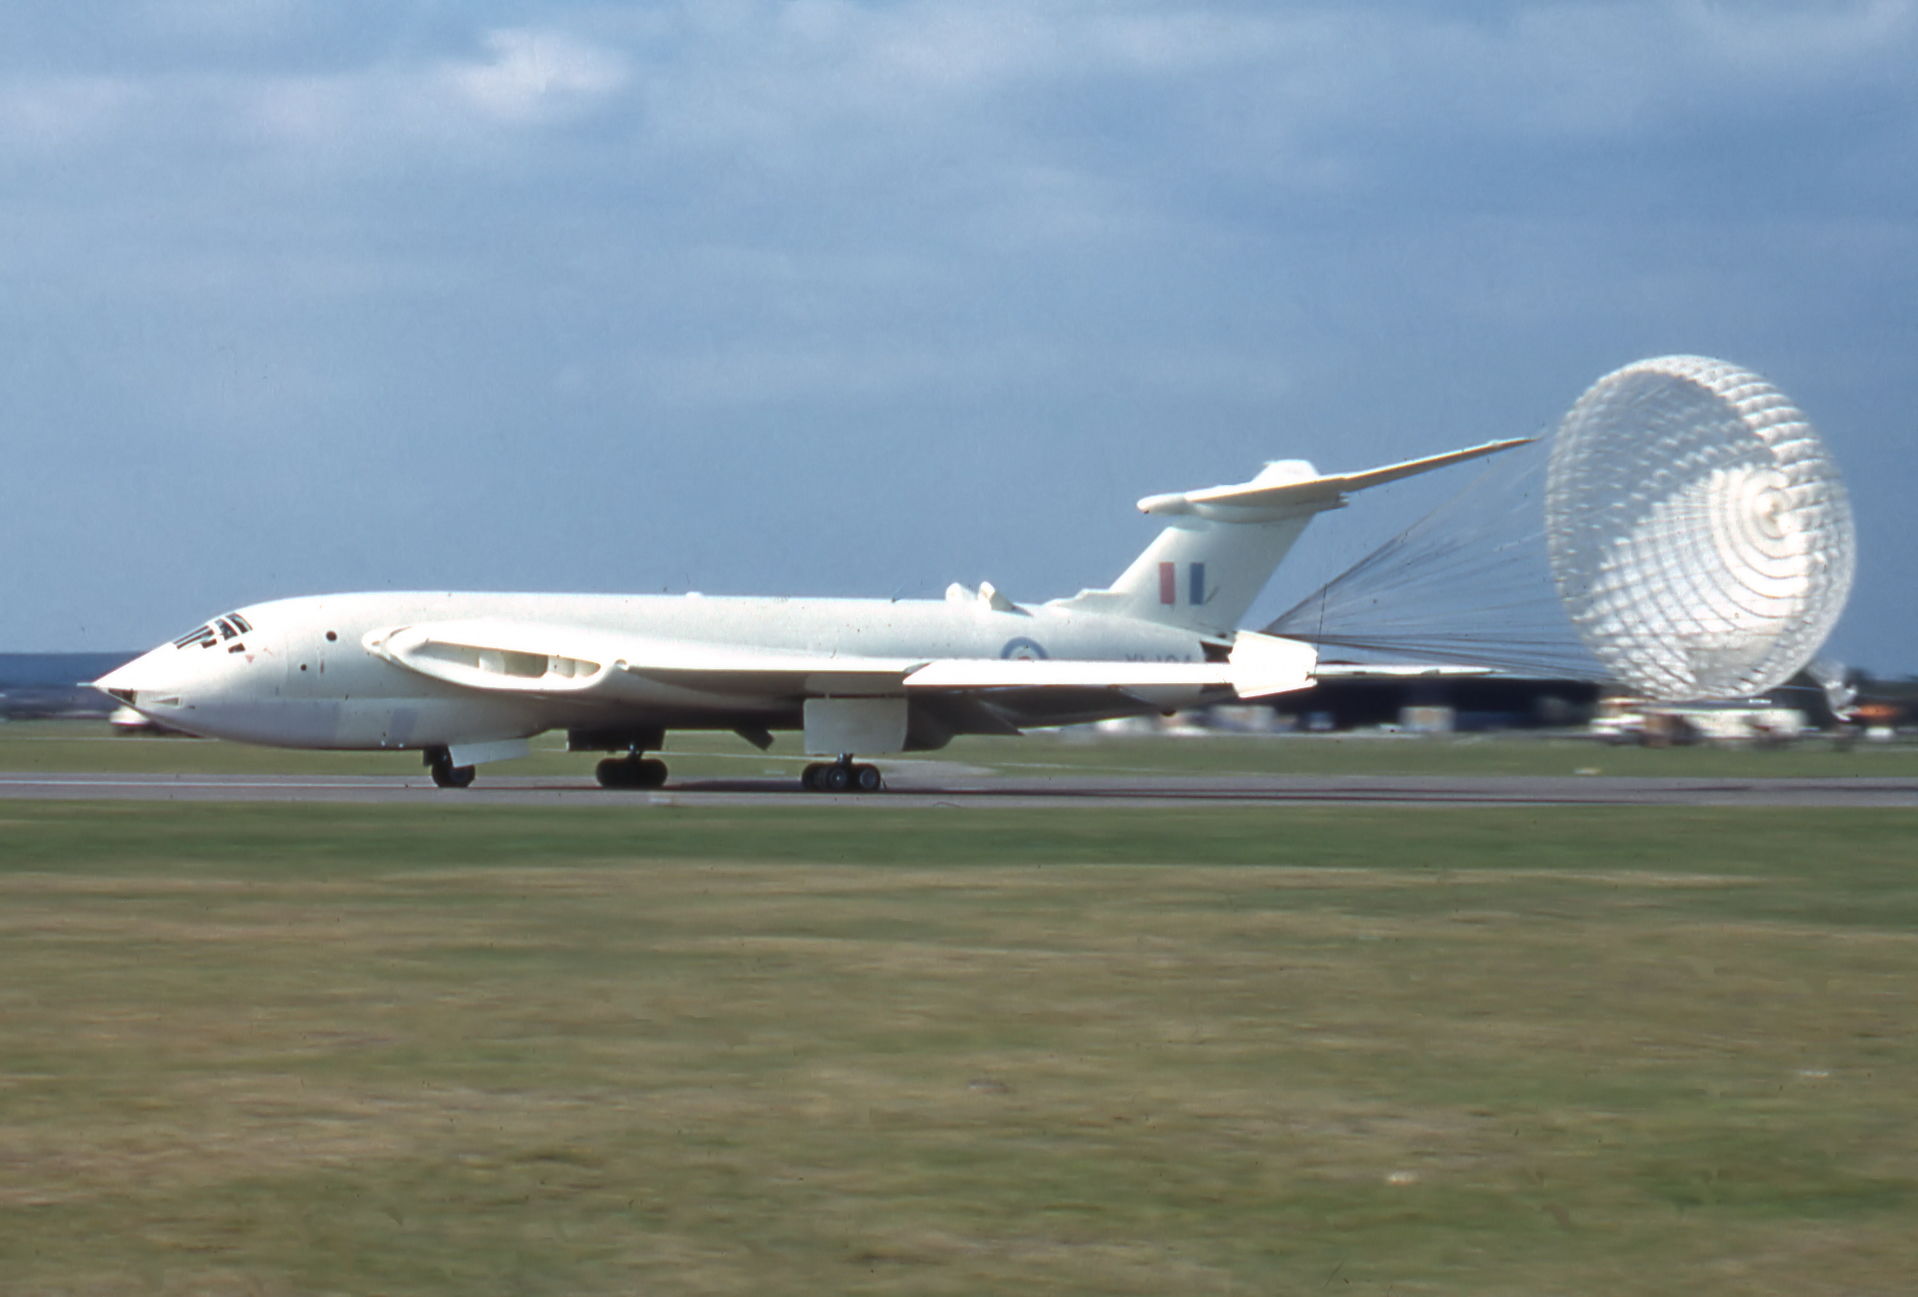 The Handley Page Victor bomber was a strategic bomber of the RAF's V bomber force used to carry both conventional and nuclear bombs.